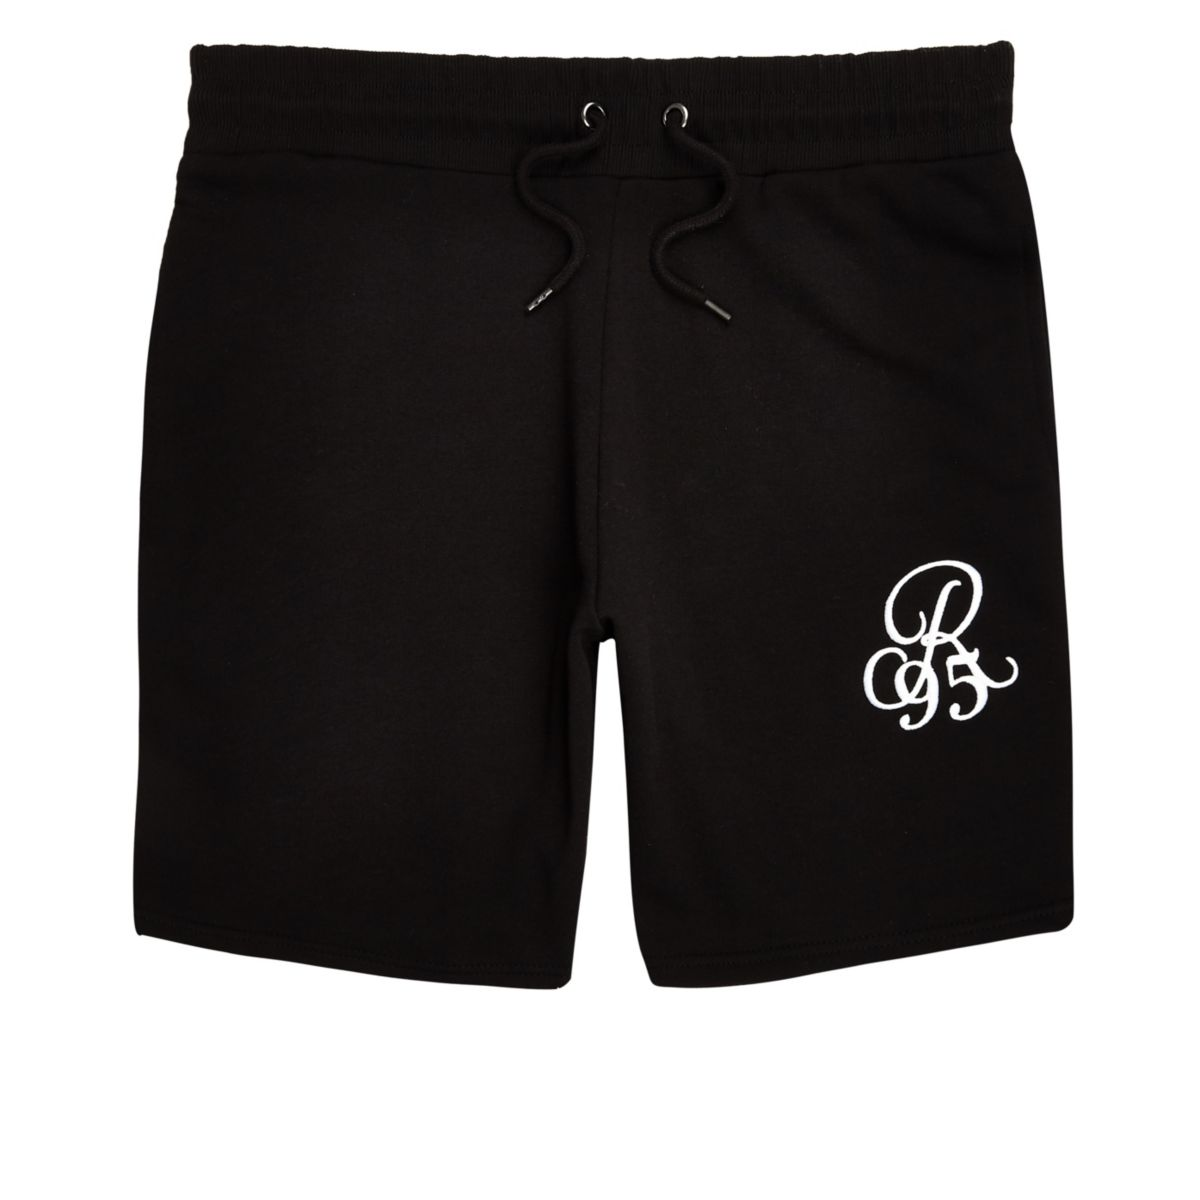 Black embroidered slim fit shorts